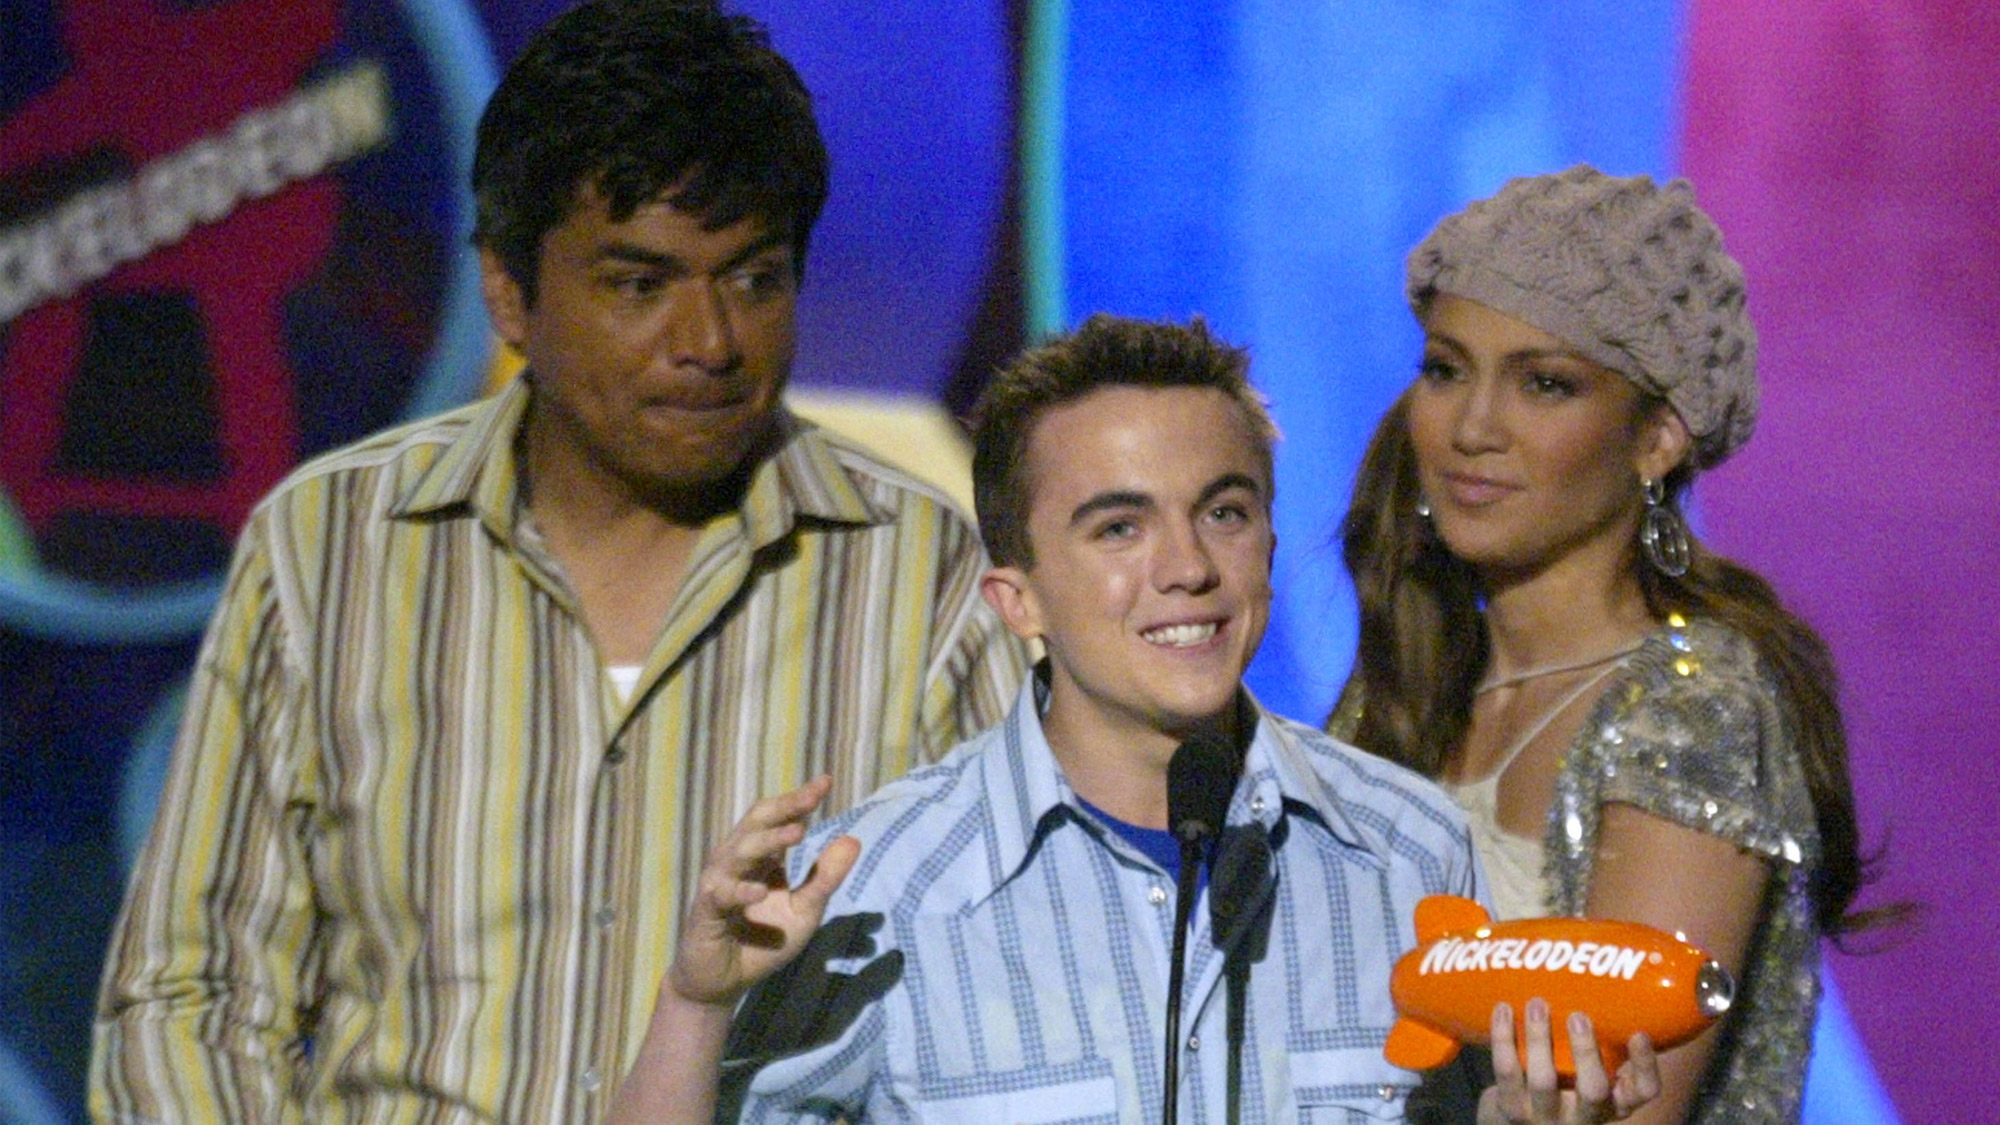 Les Kid's Choice Awards récompensent Frankie Muniz